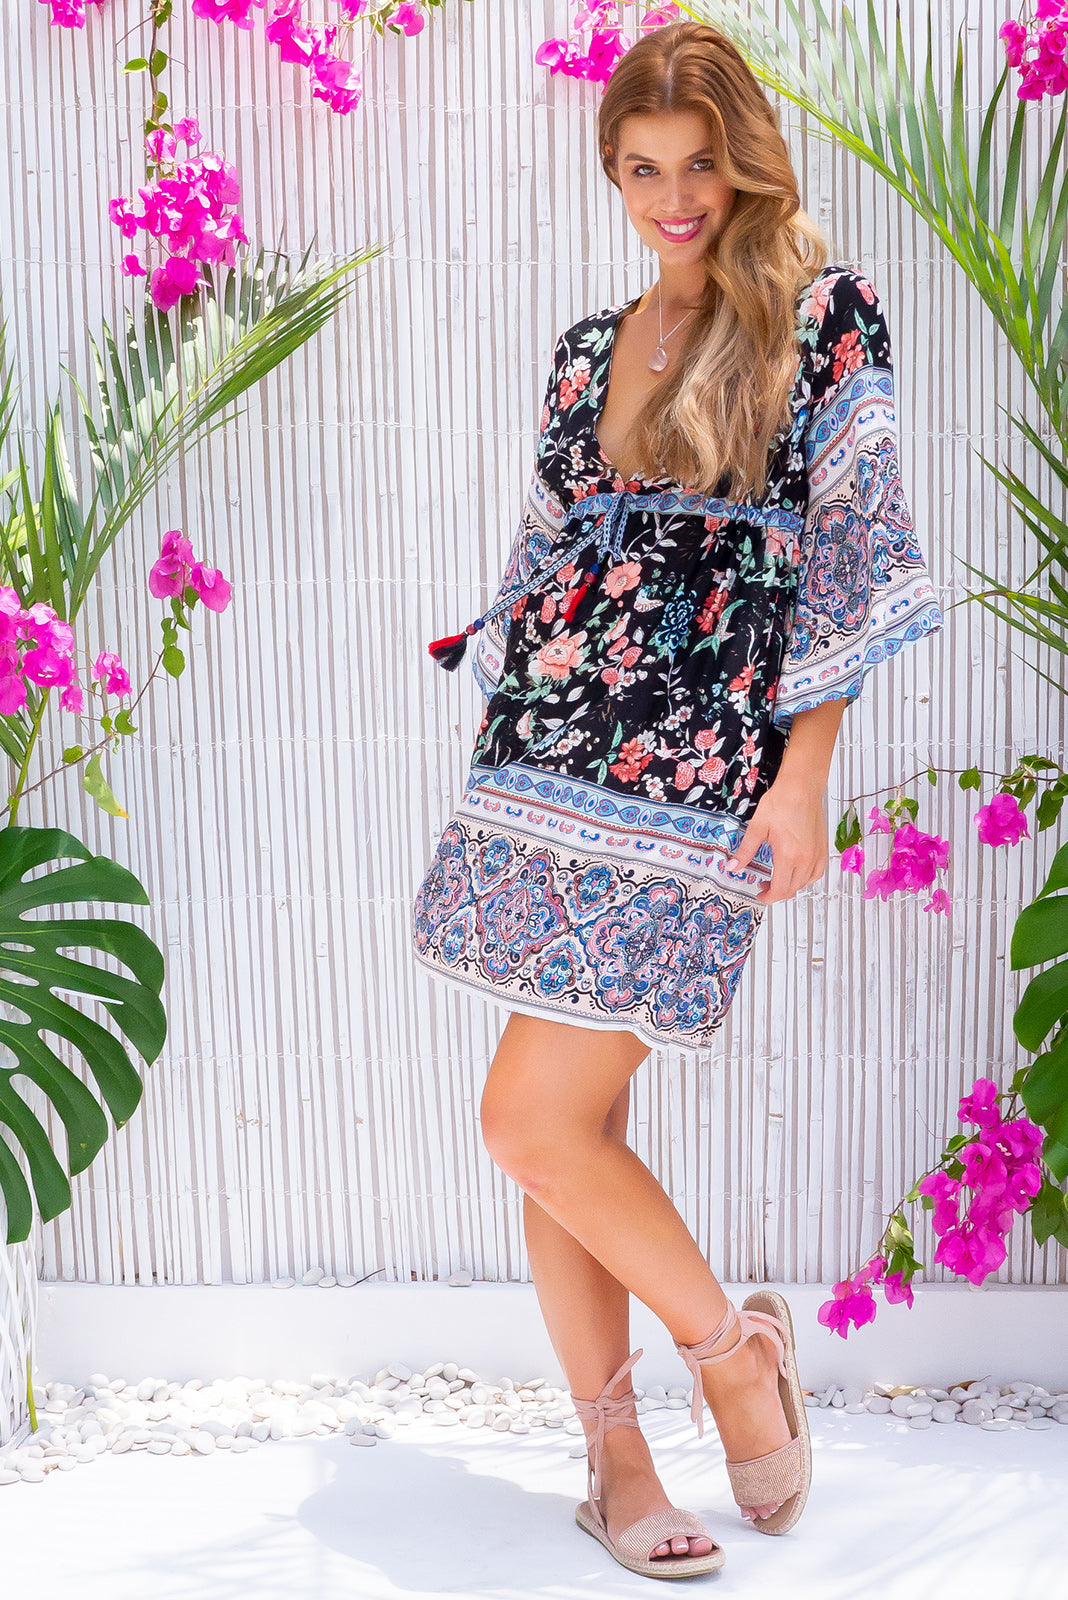 Layla Wood Rose Black Mini Dress, bohemian summer style, 100% rayon, adjustable drawstring waist, multicoloured braided drawstring with bead detail, side pockets, black base with medium multicoloured floral print featuring coral, peach, light blue and mint and complimentary border pattern.